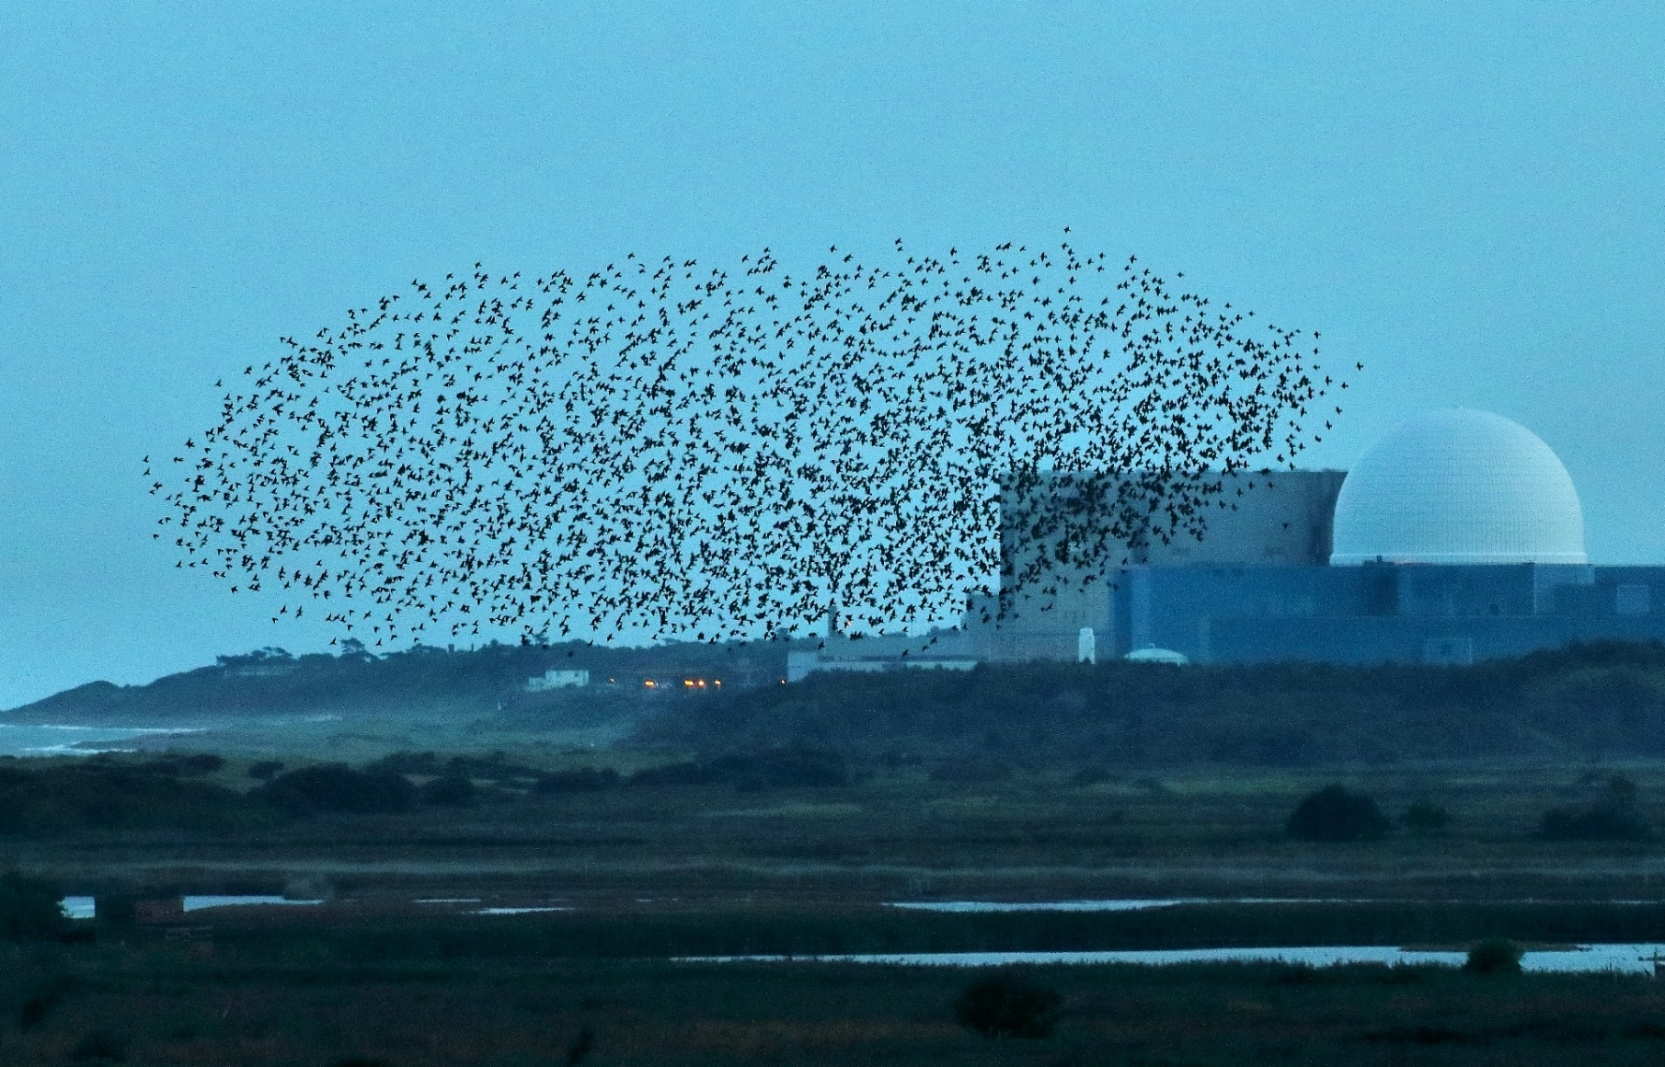 A flock, or murmuration, of starlings flies across a nature reserve in Suffolk, England. Image by Airwolfhound,